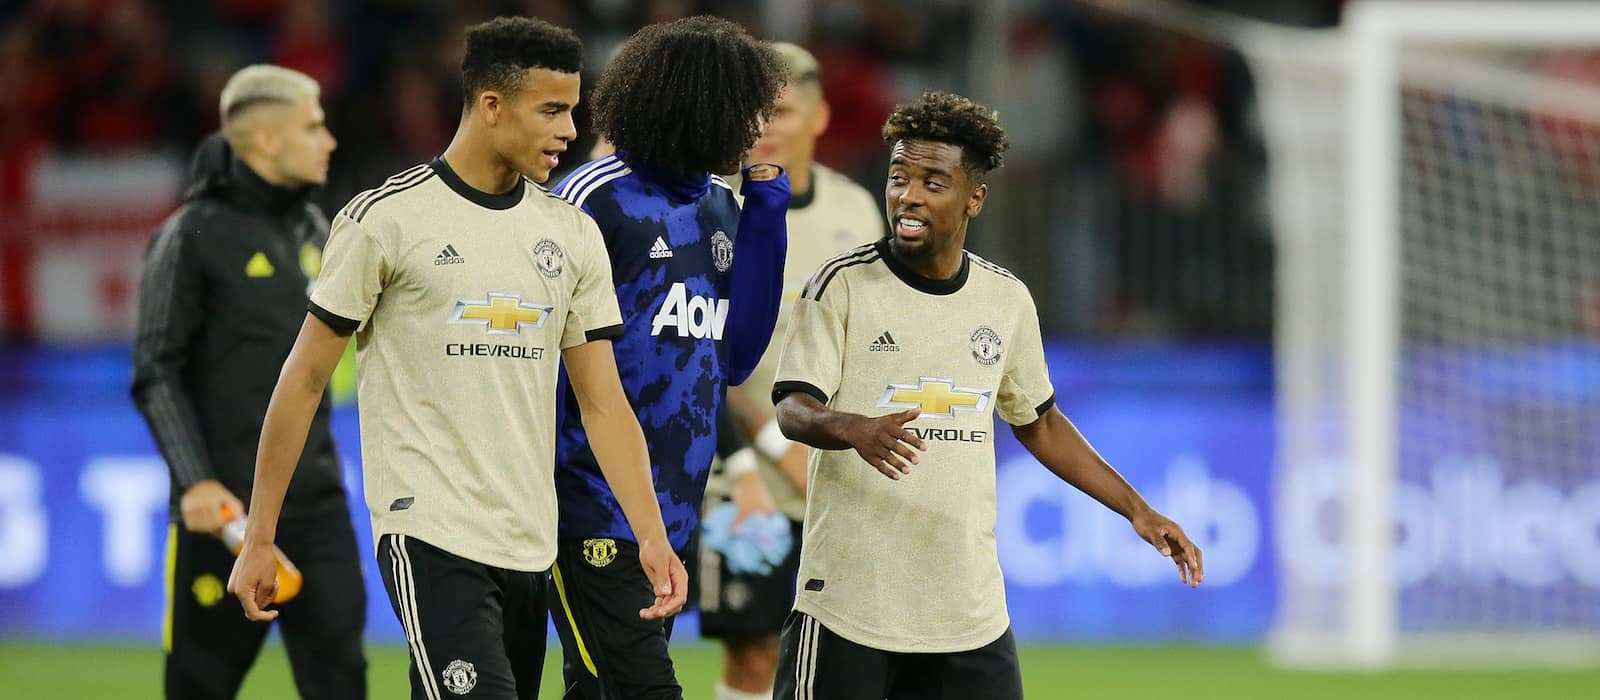 Is Ole Gunnar Solskjaer putting his faith in youth…or not?